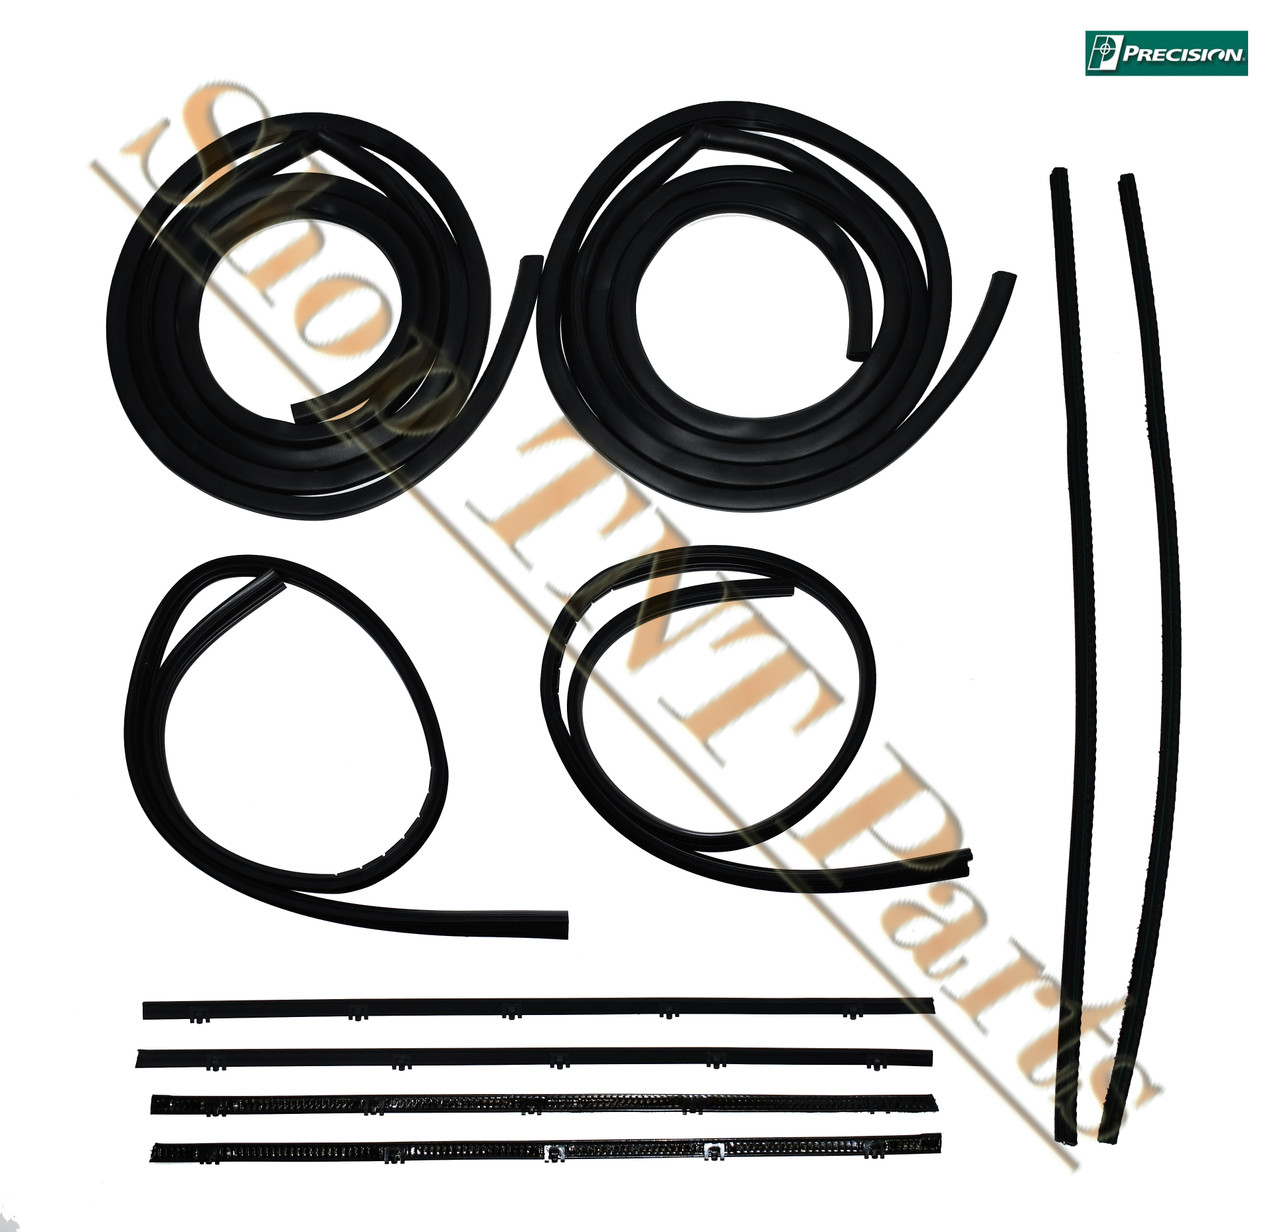 1967-1972 Chevrolet GMC Pickup Door Seal Weatherstripping Kit Precision